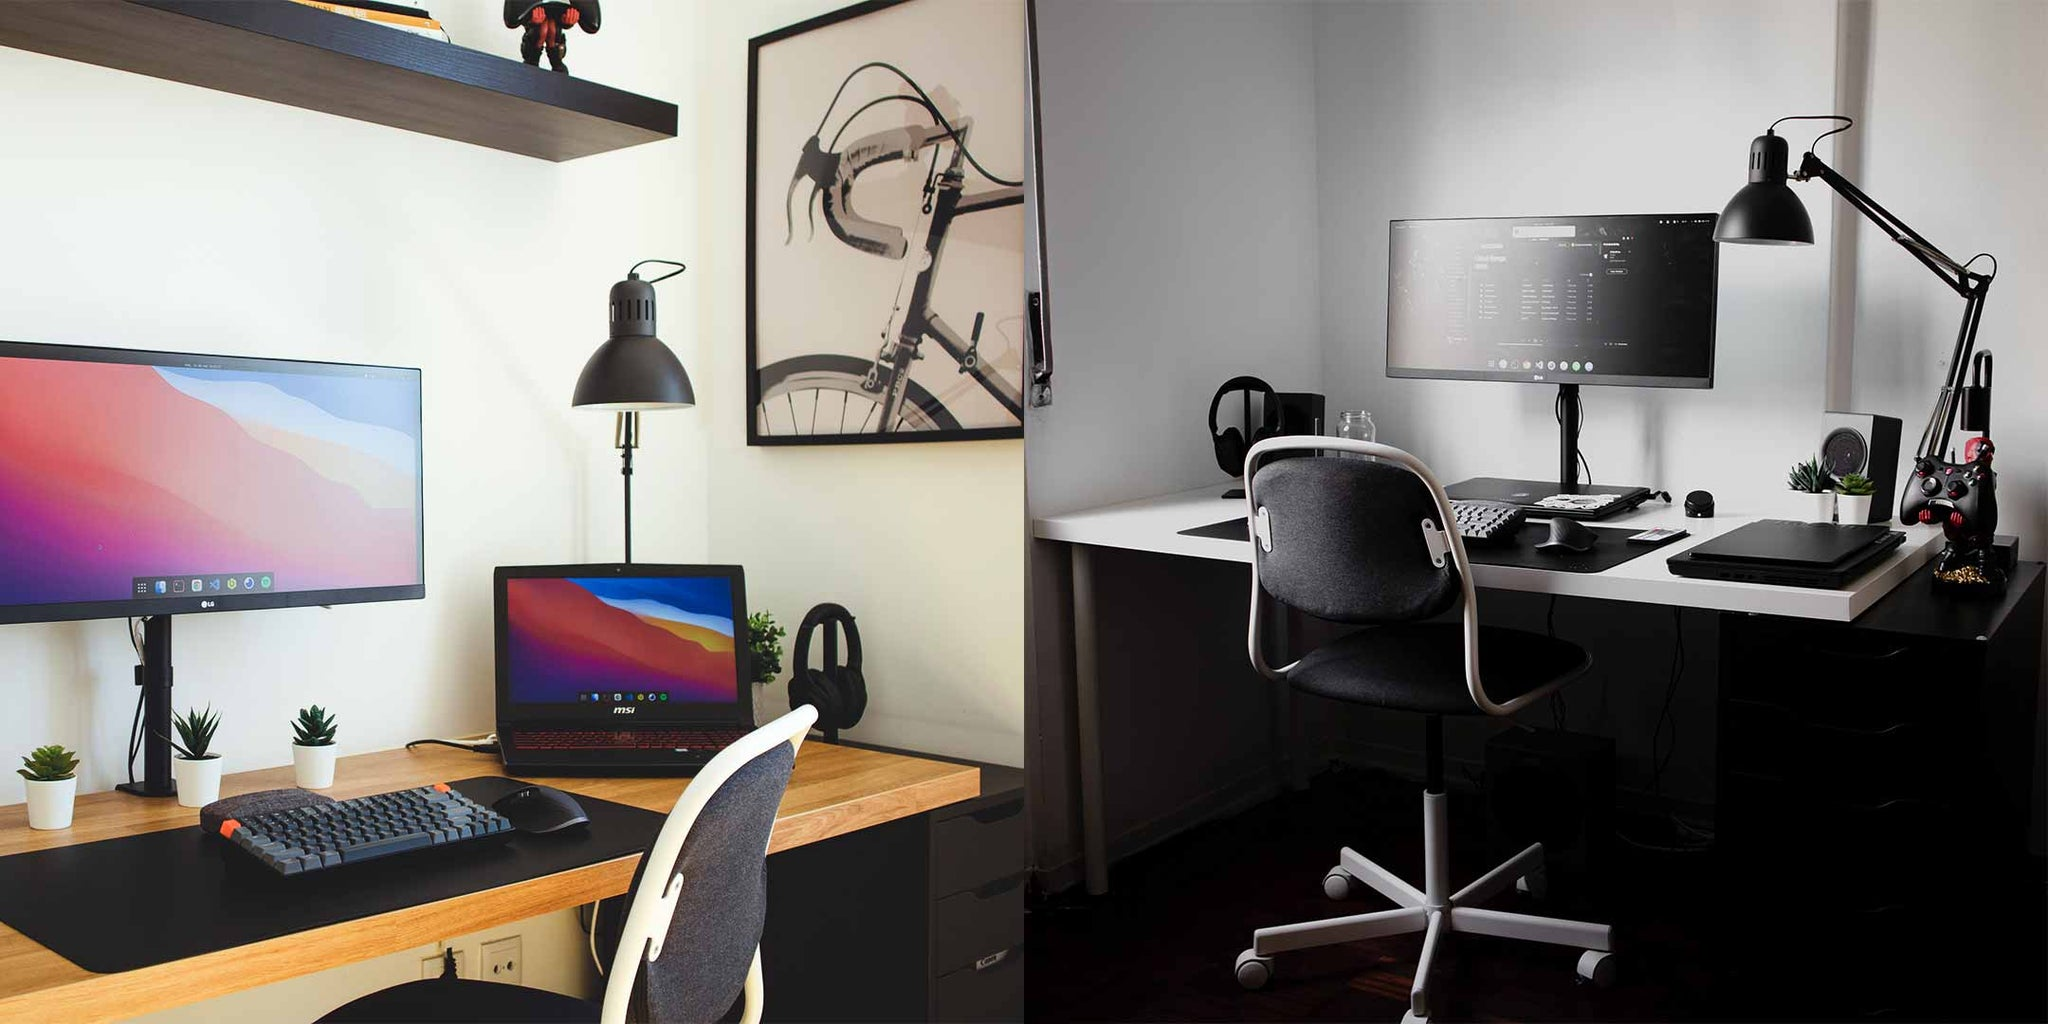 Office Furniture Shopping Tips, Work from home furniture shopping tips